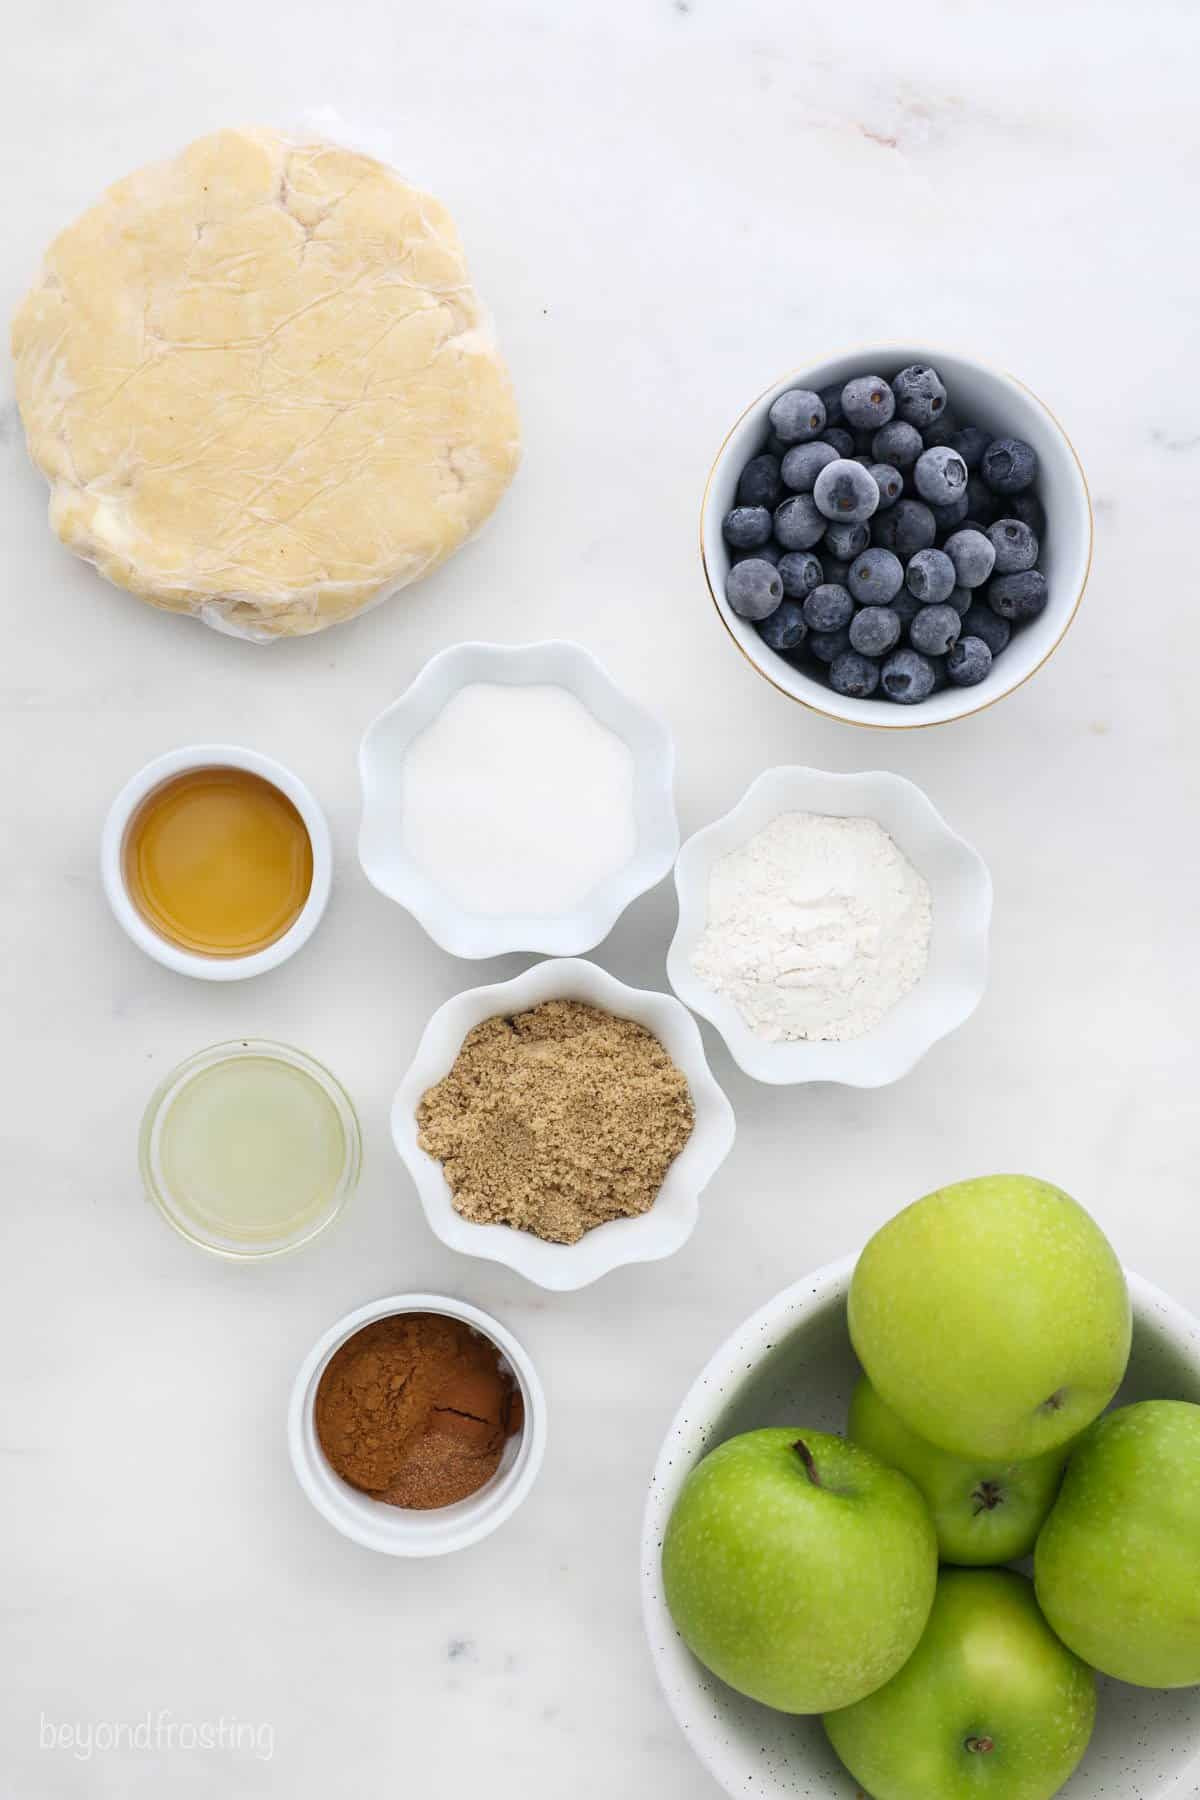 Ingredients for an apple pie laid out o a table